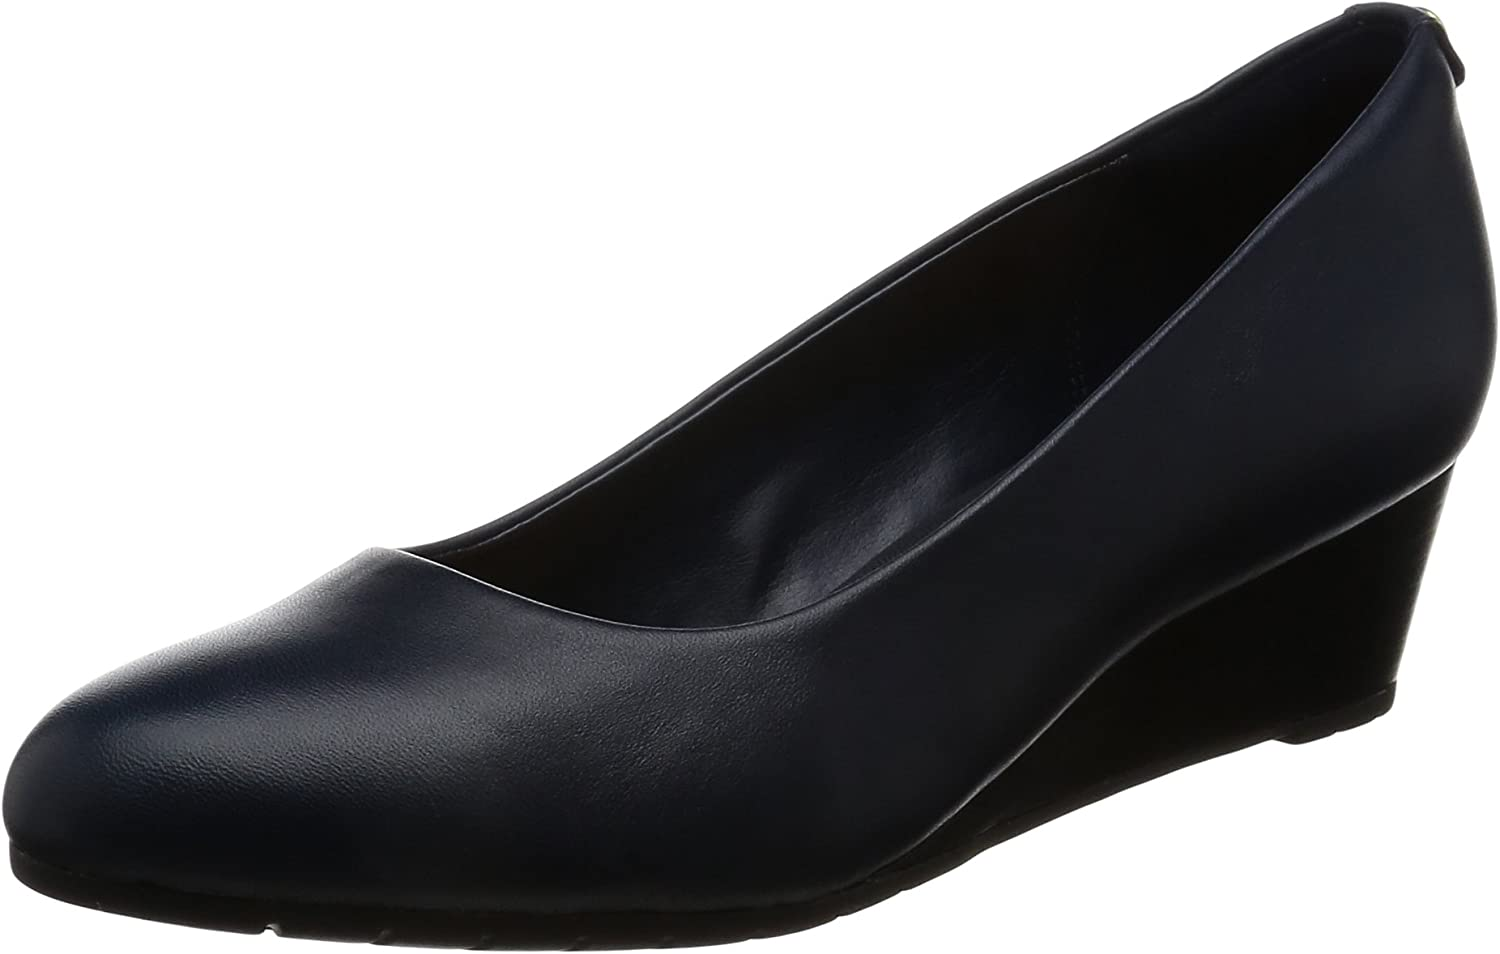 Clarks Vendra Bloom - Navy Leather Womens Heels